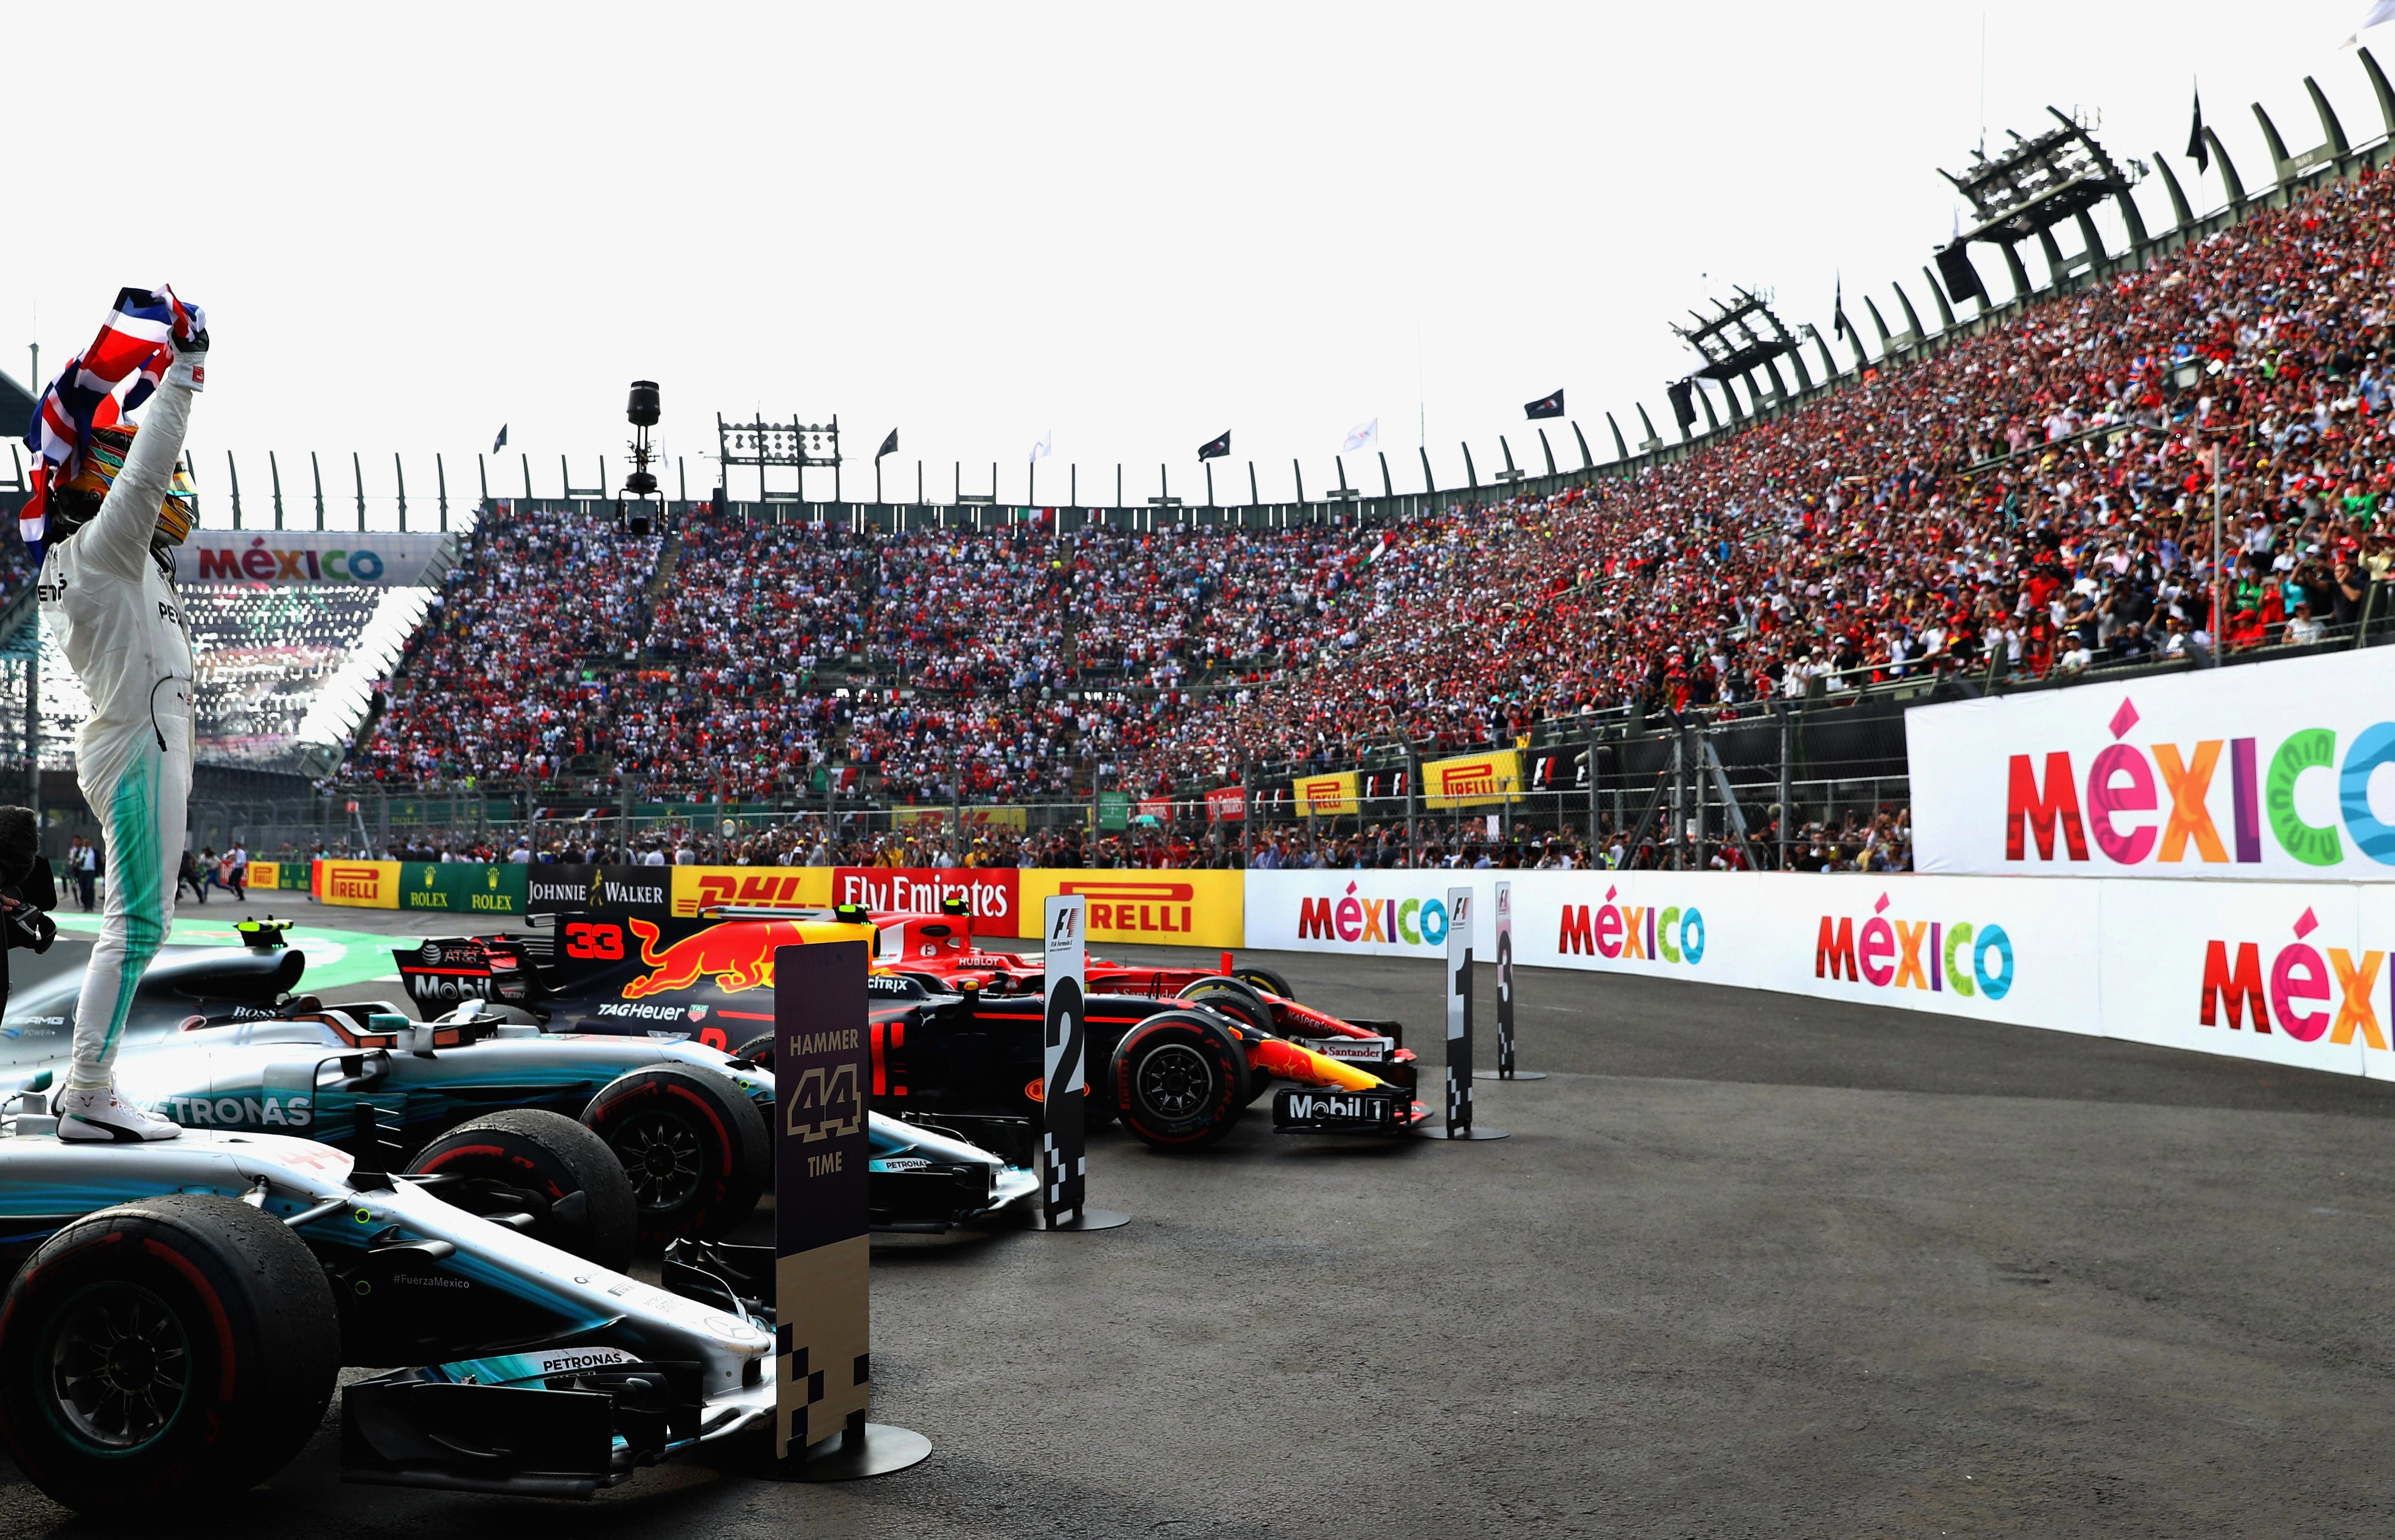 Lewis Hamilton celebrates in front of the Mexico crowd